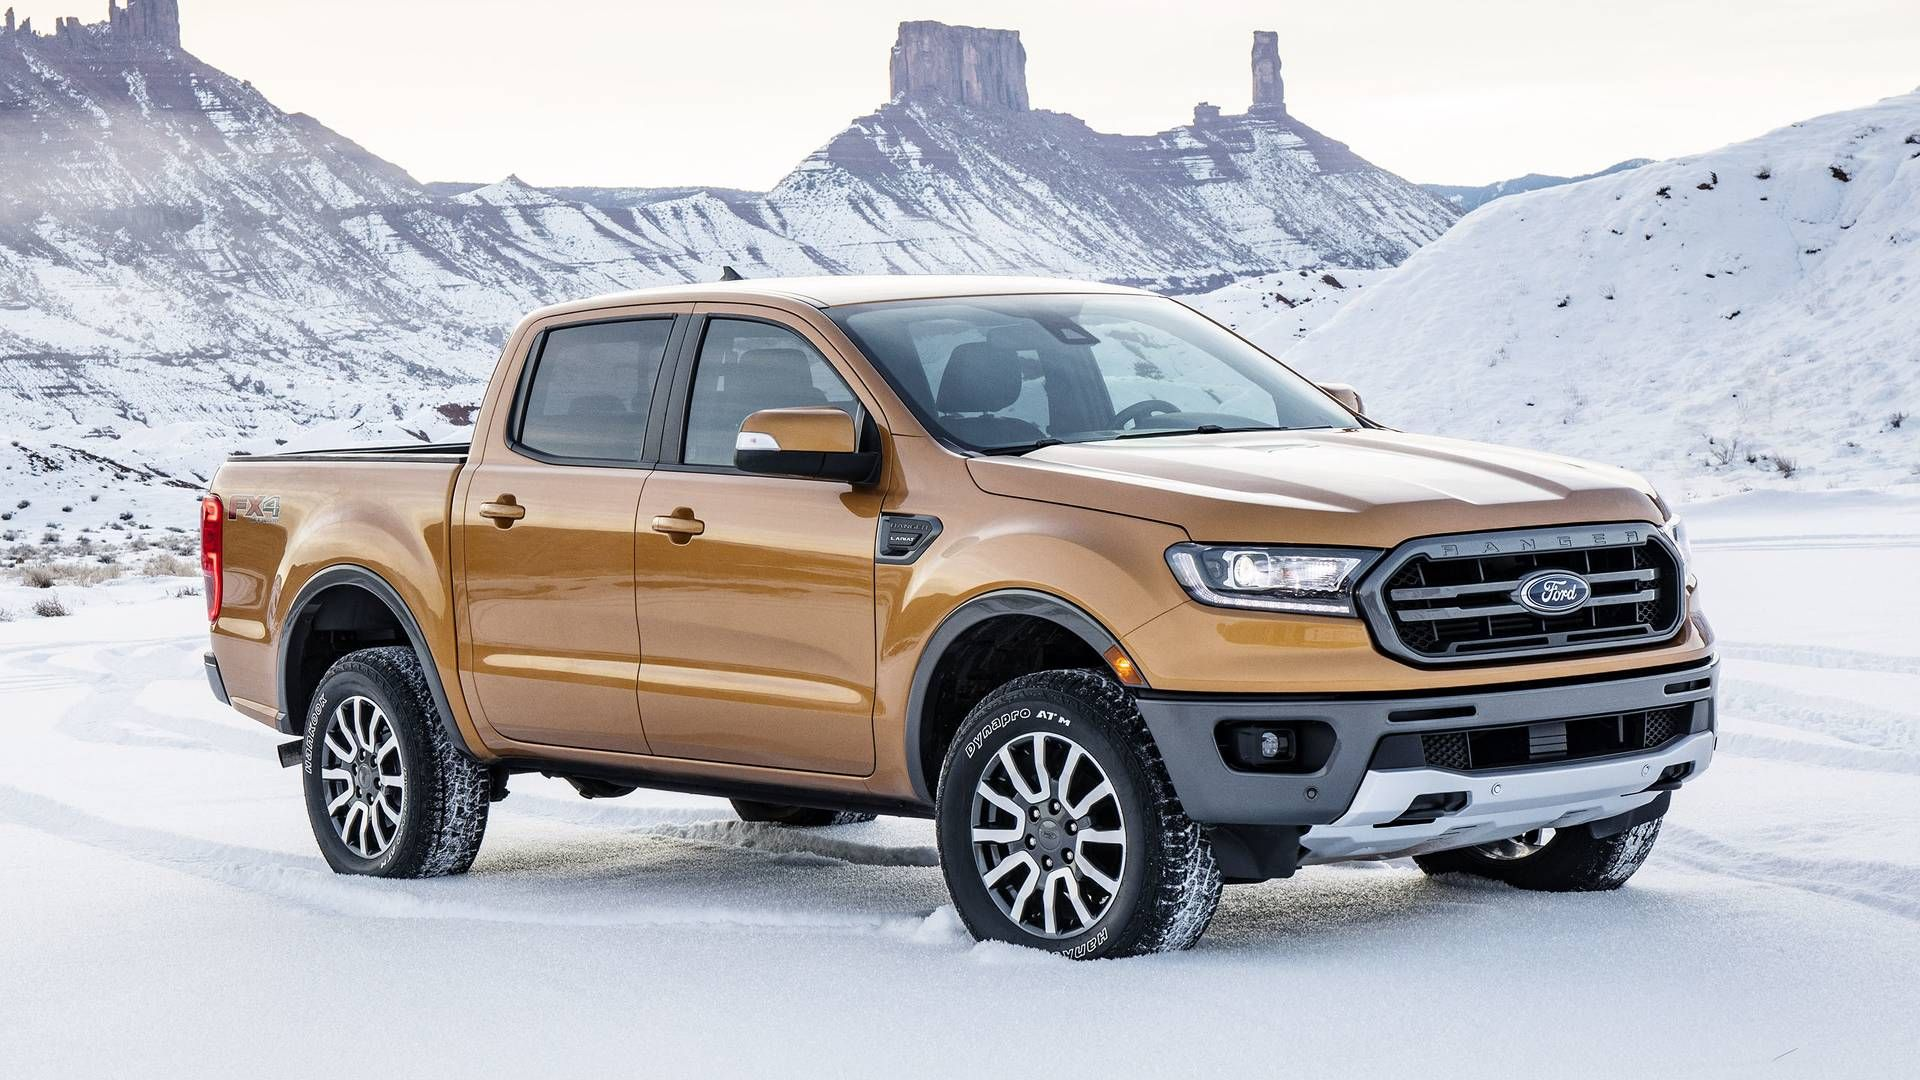 Ford Ranger News And Reviews Motor1 Com 2019 Ford Ranger 2020